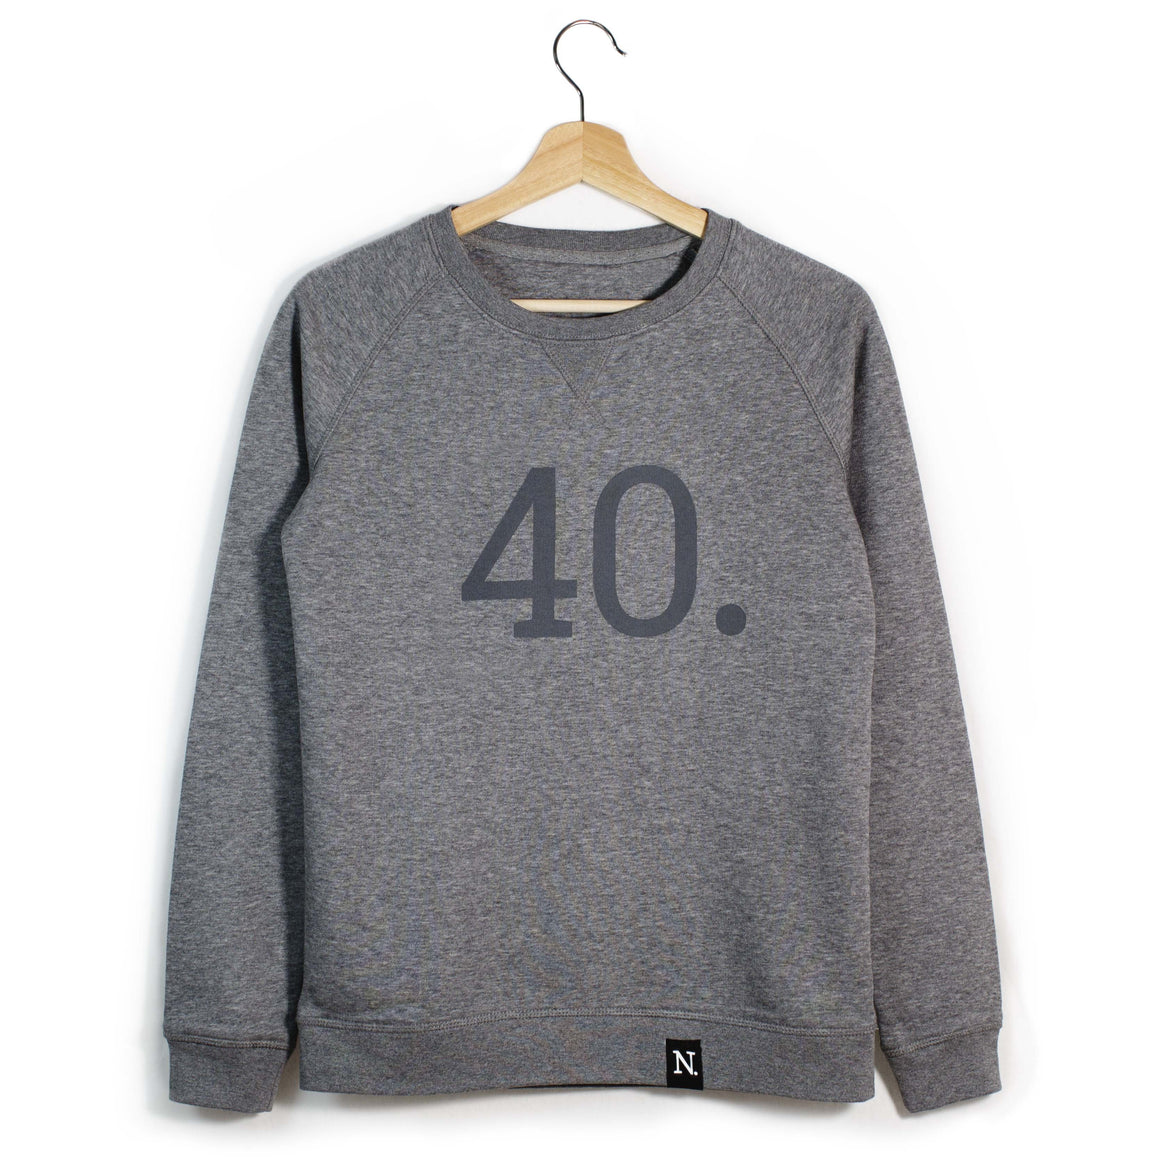 The Number 40 dark grey sweatshirt front